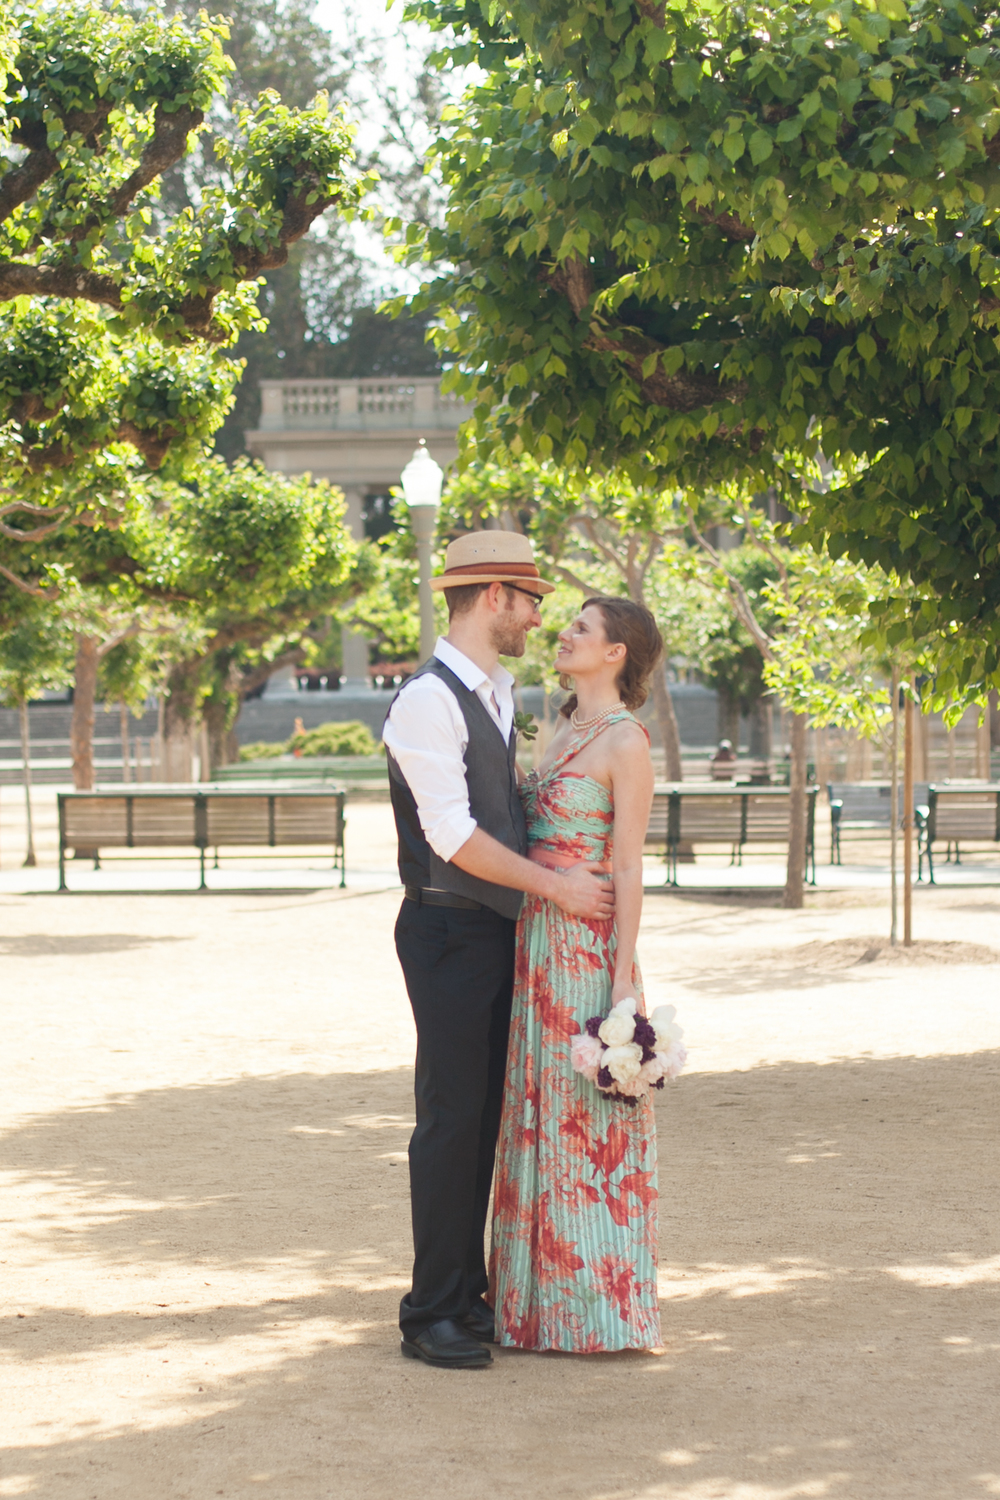 San Francisco Elopement Photographer-Meo Baaklini-Golden Gate Park77.jpg